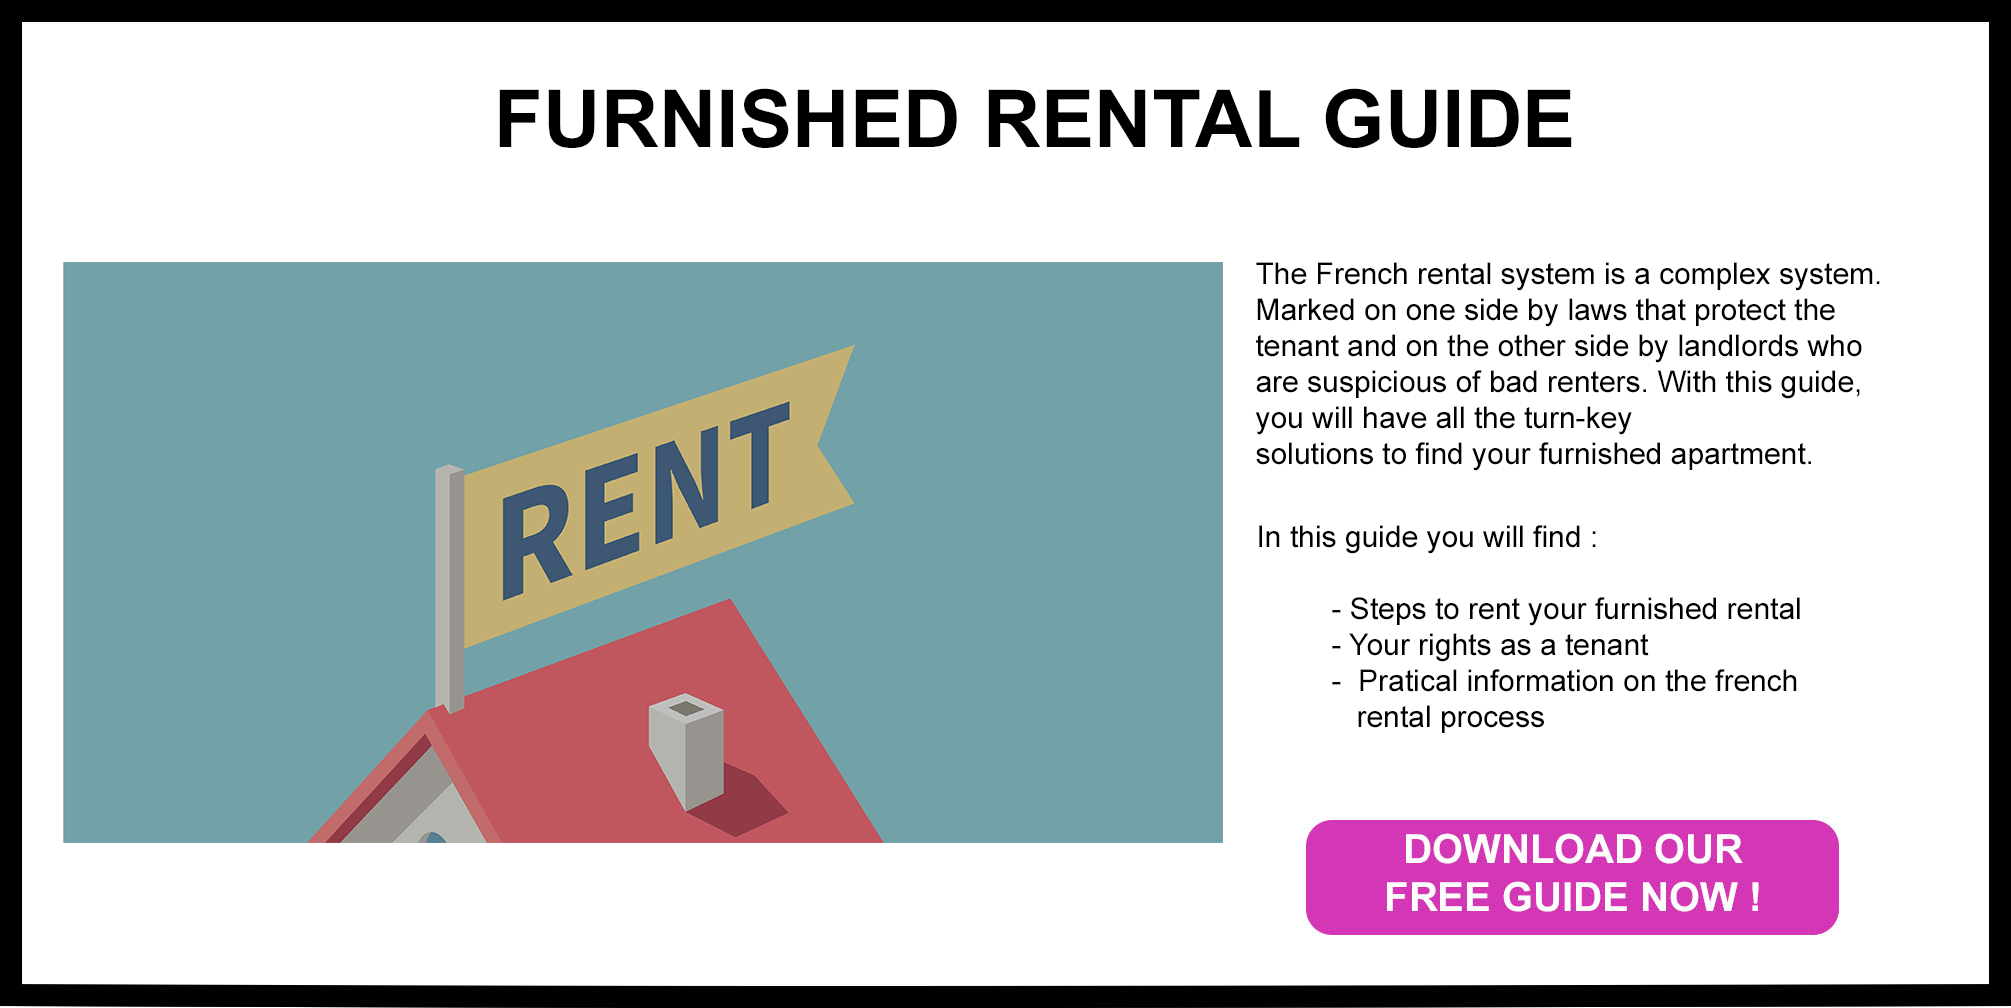 cta-grand-guide-furnished-rental